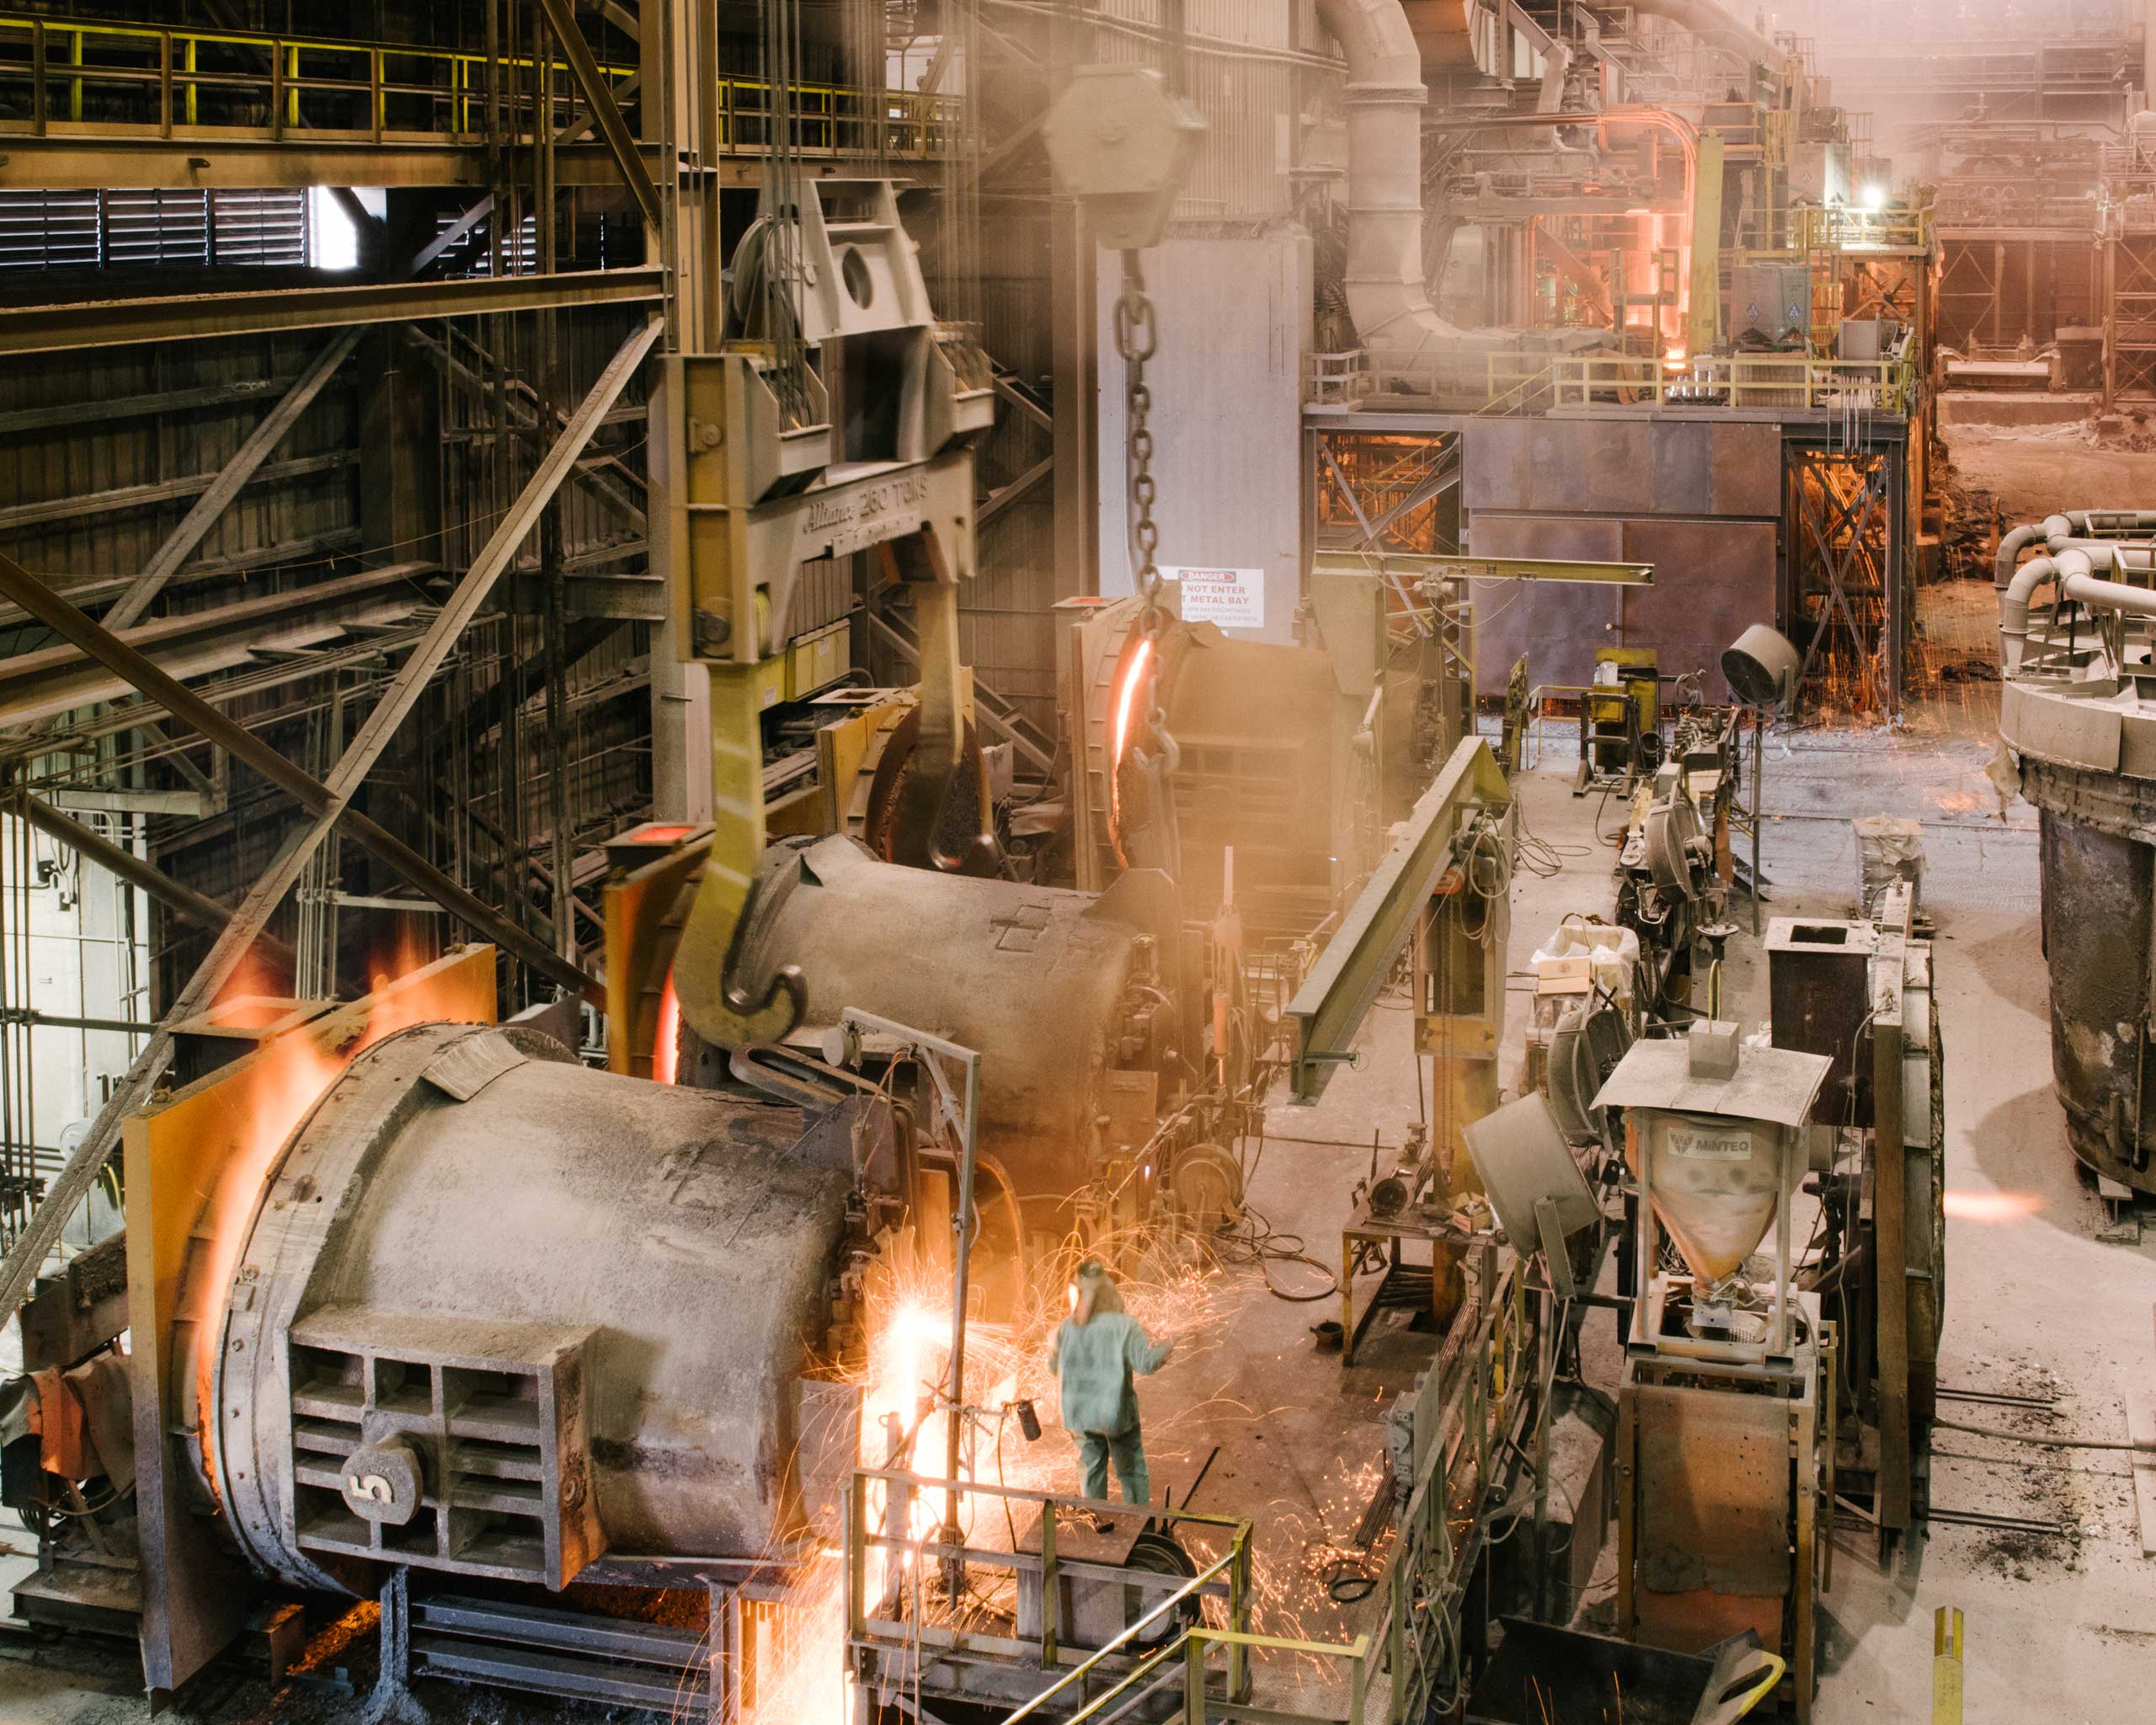 Nucor's Crawfordsville, Ind. steel mill. In this facility, scrap metal—old automobiles, appliances and construction parts—is melted, cast into slabs, and eventually rolled into large toilet paper-shaped coils of finished steel. The steel will soon be made into anything from industrial oil pipes to cars to buildings, Crawfordsville, Ind. on Aug. 25, 2014.